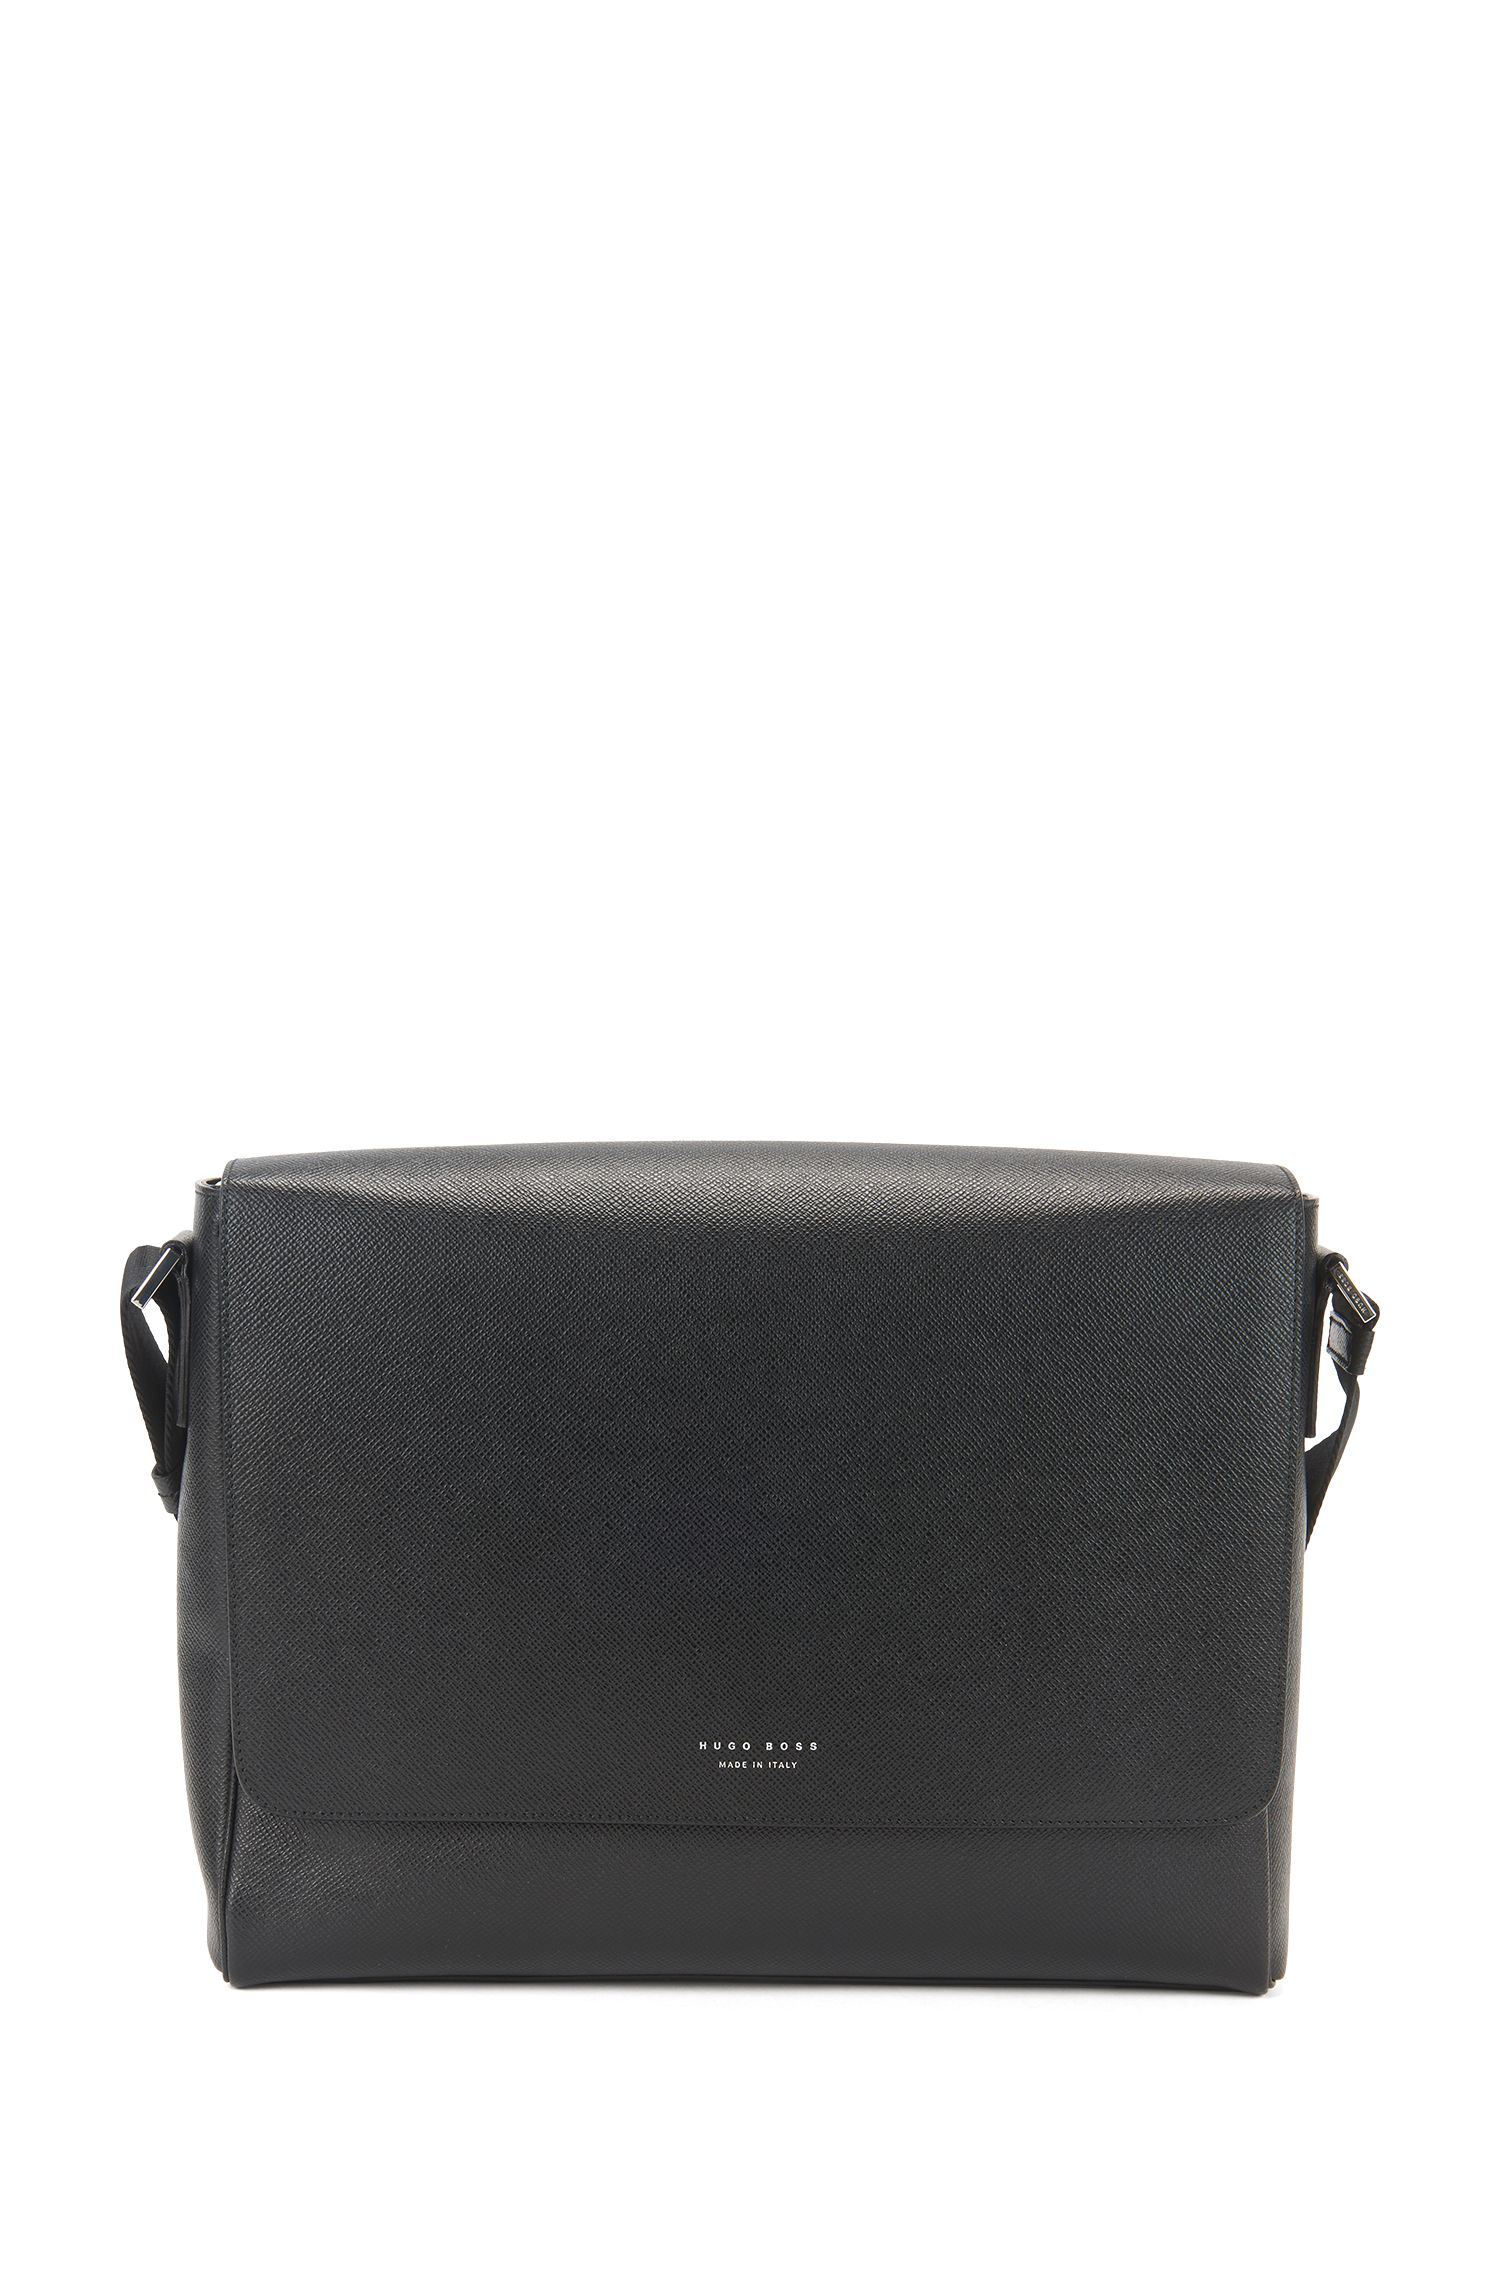 Signature Collection messenger bag in grained palmellato leather